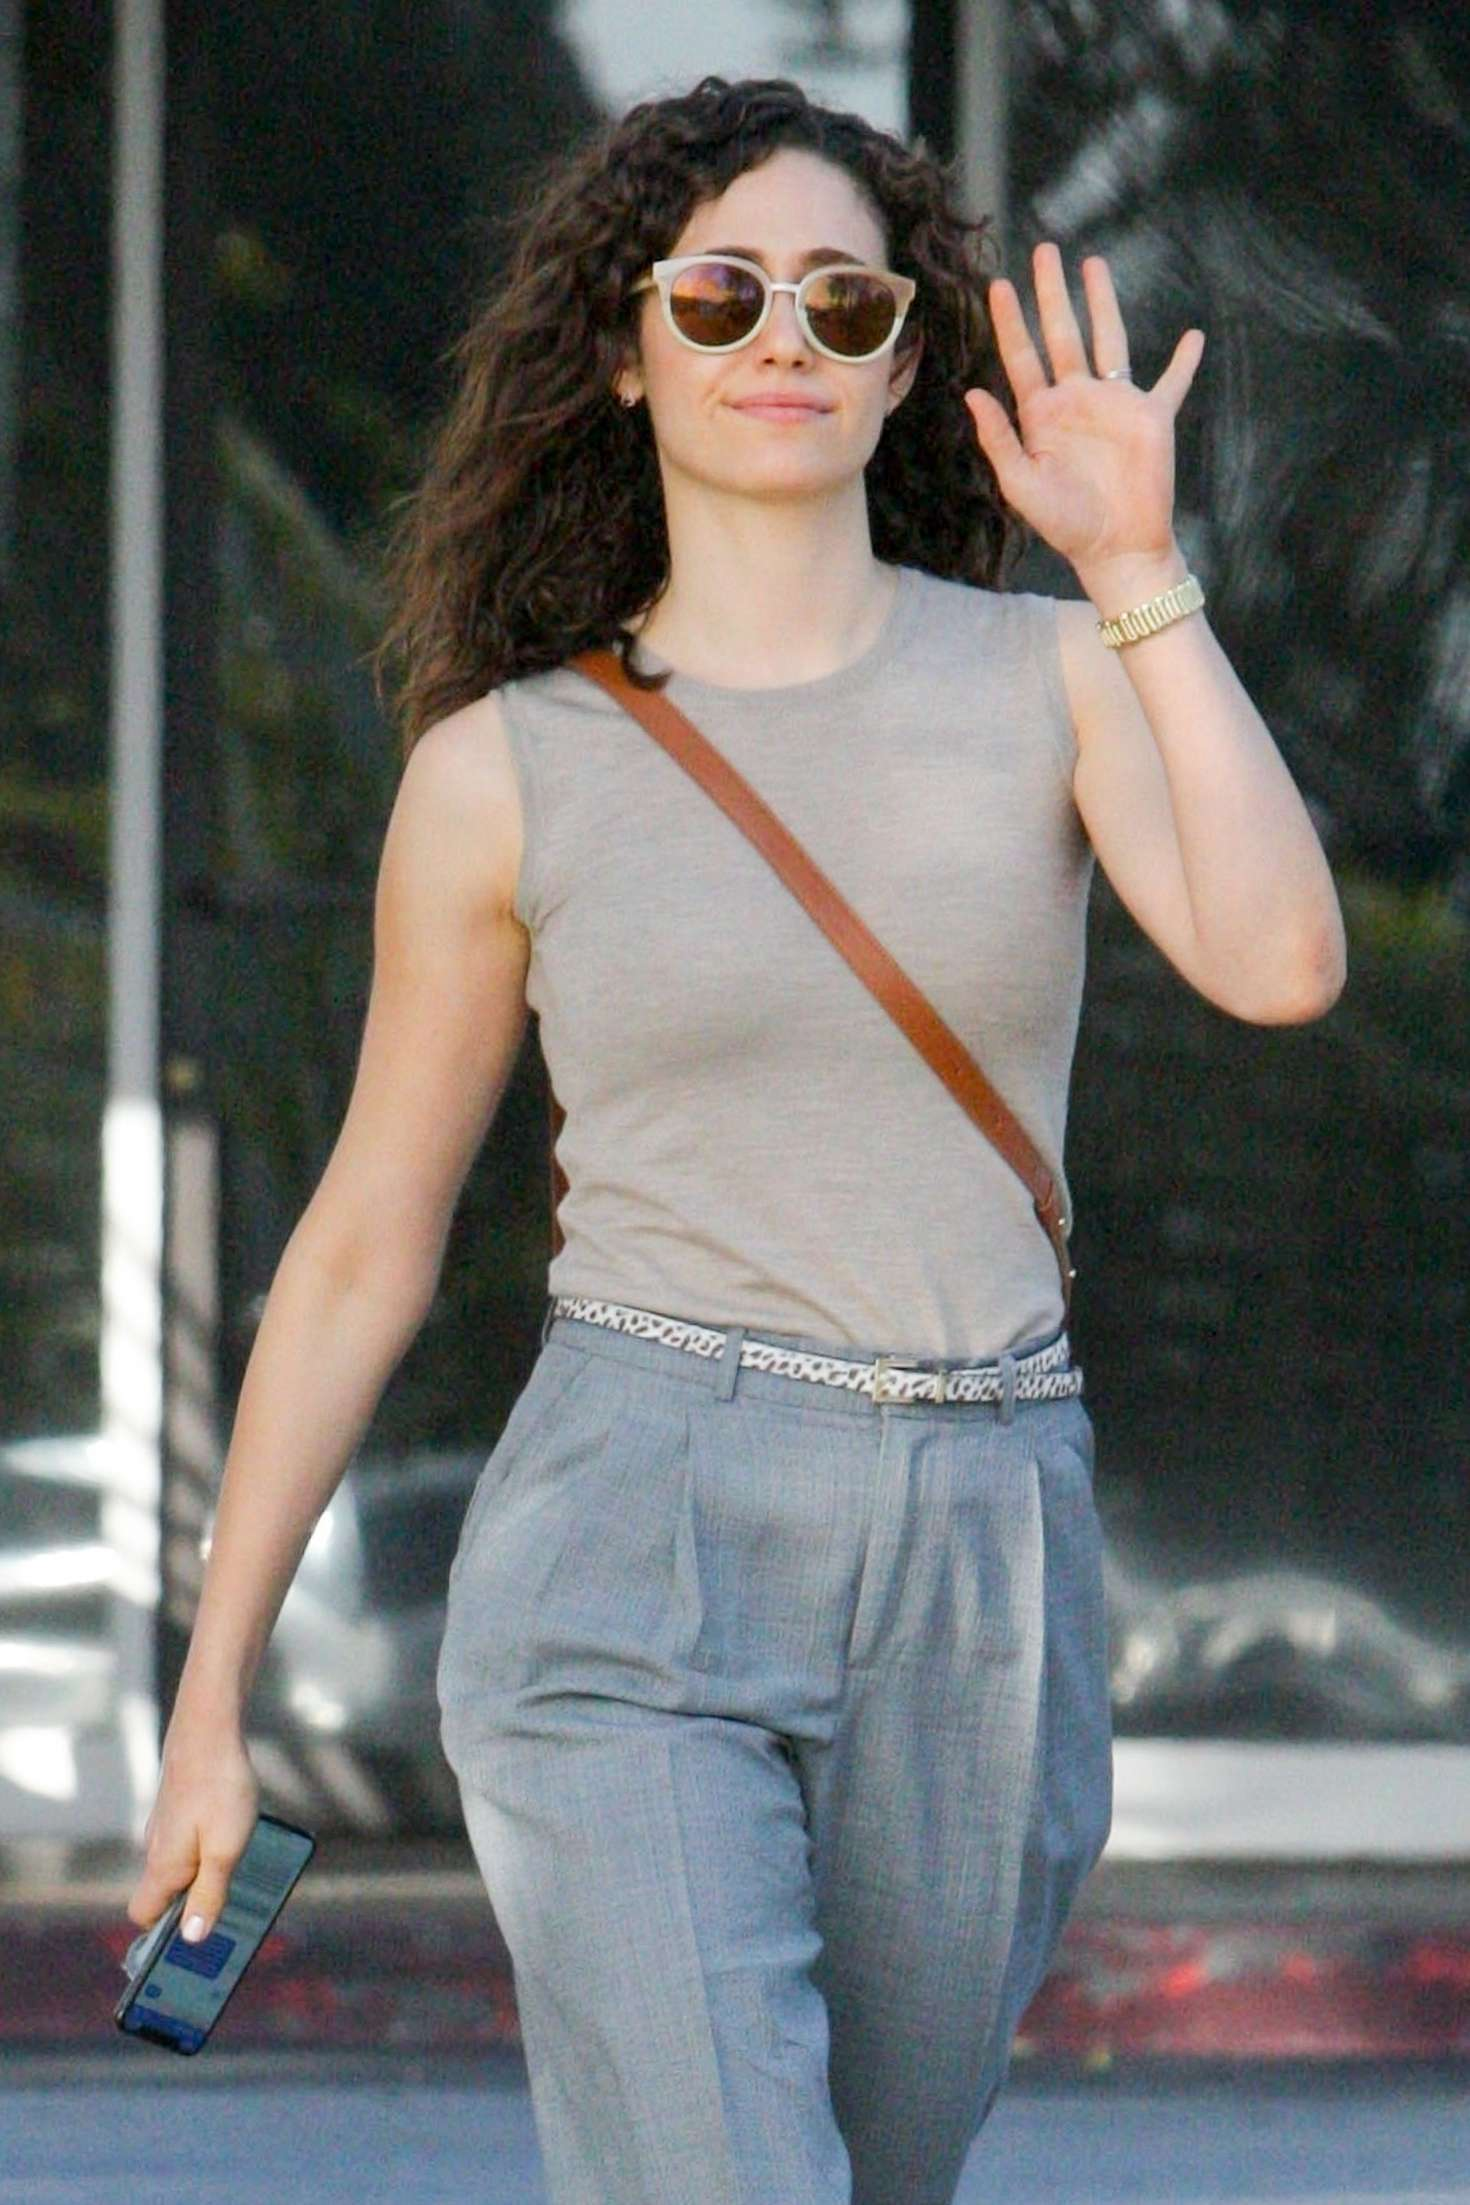 Emmy Rossum Out And About In Los Angeles GotCeleb